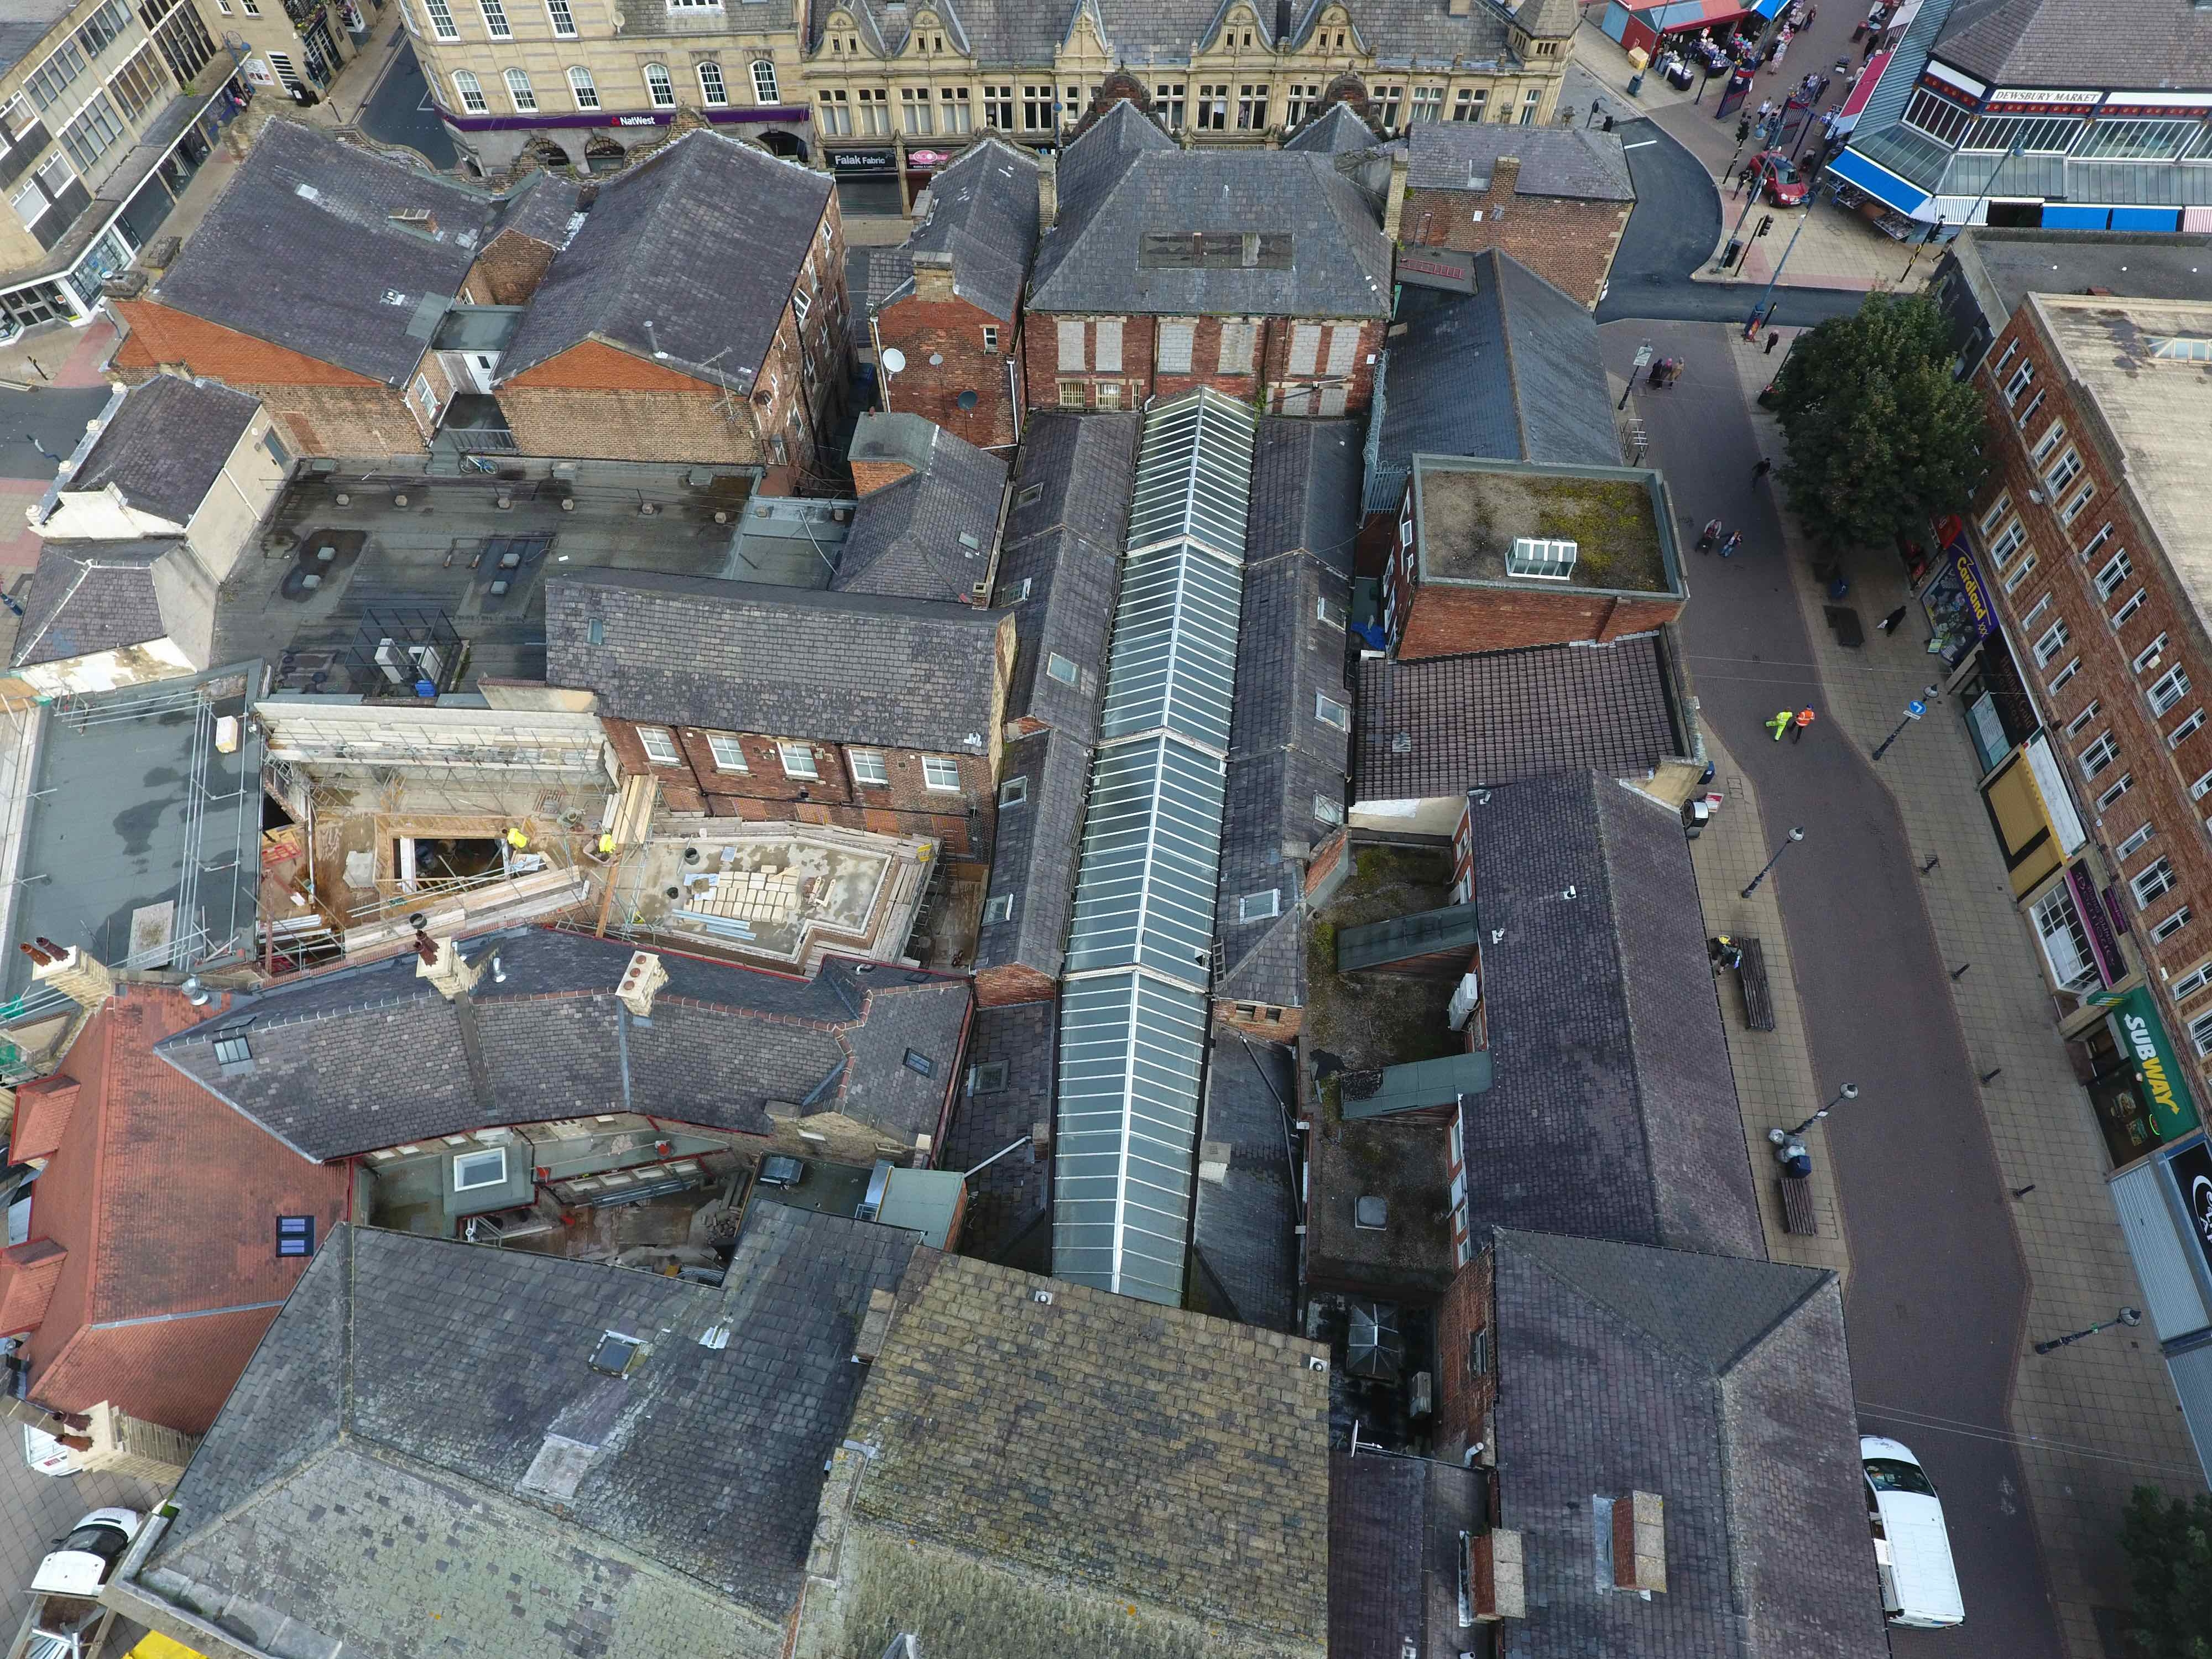 View of Dewsbury Arcade from the air